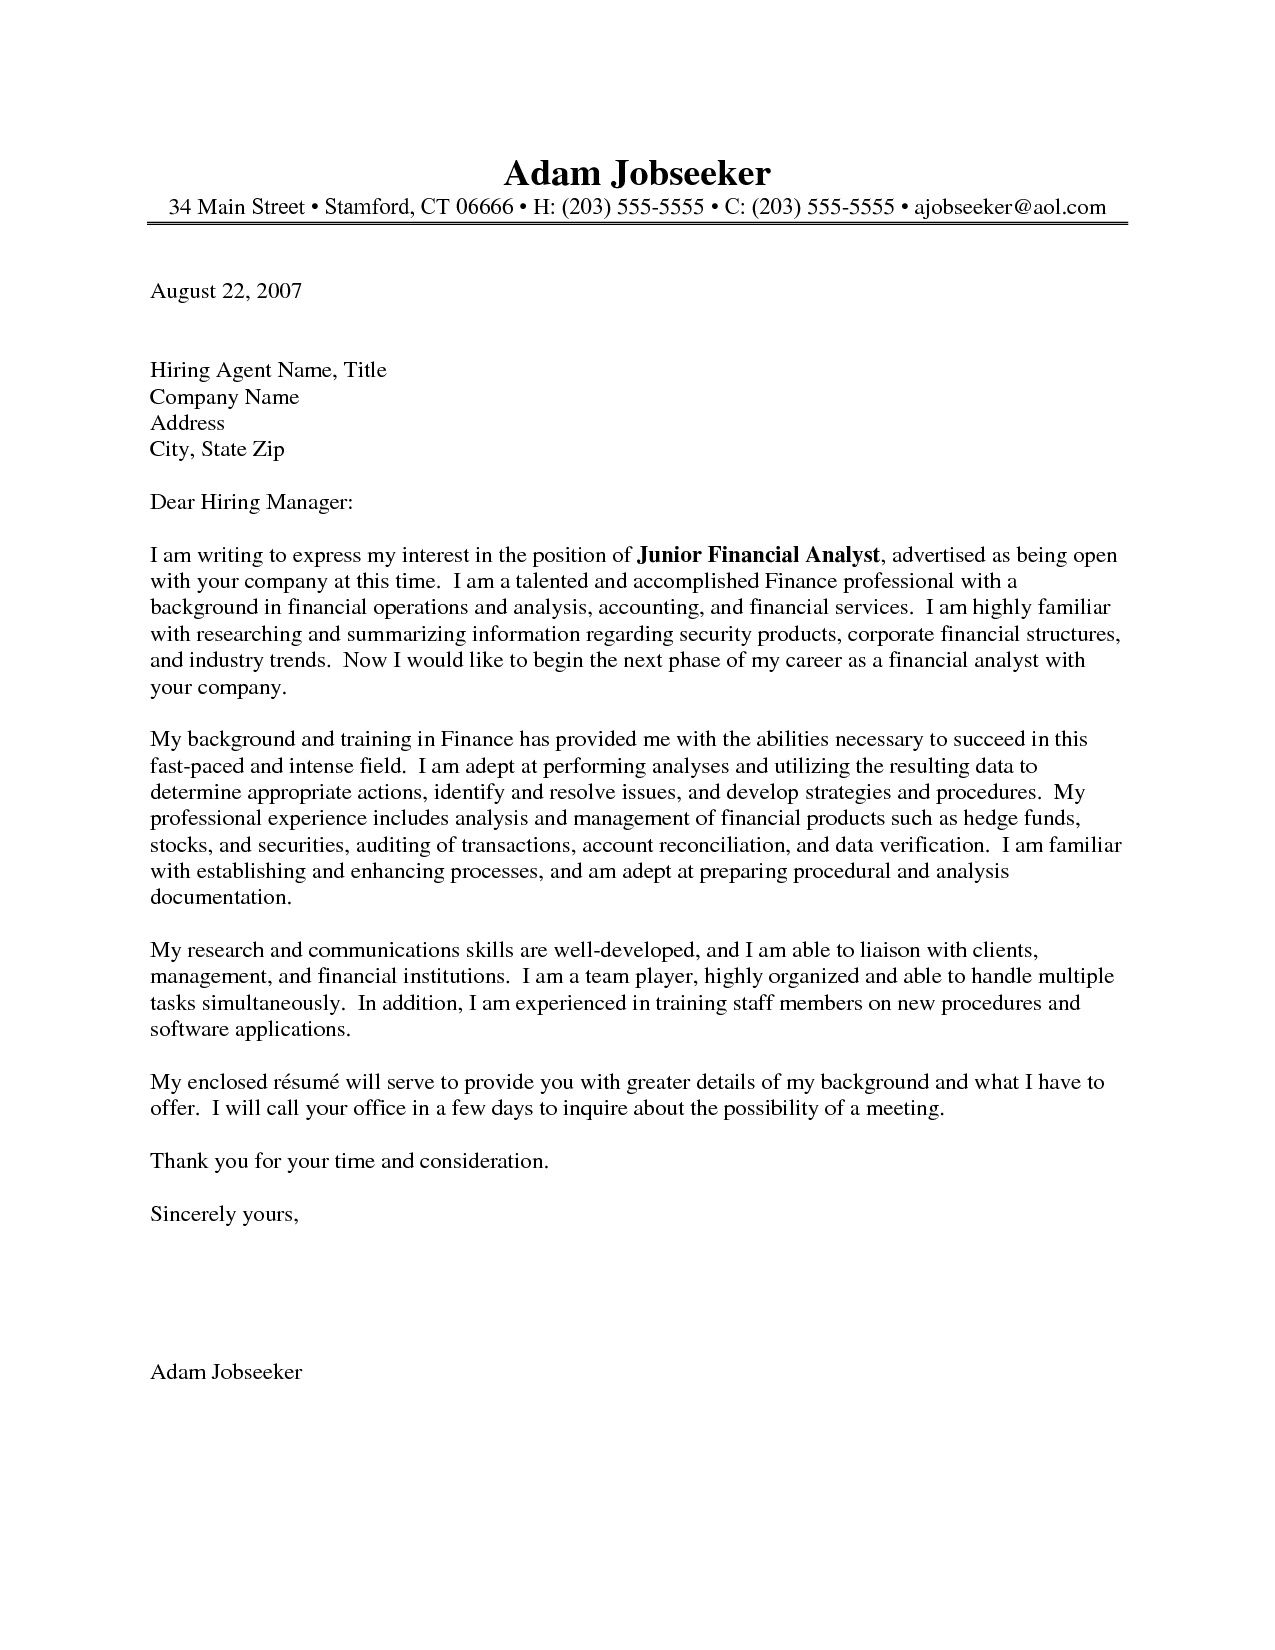 Financial Analyst Cover Letter Example  Financial Analyst Cover Letter Example we provide as